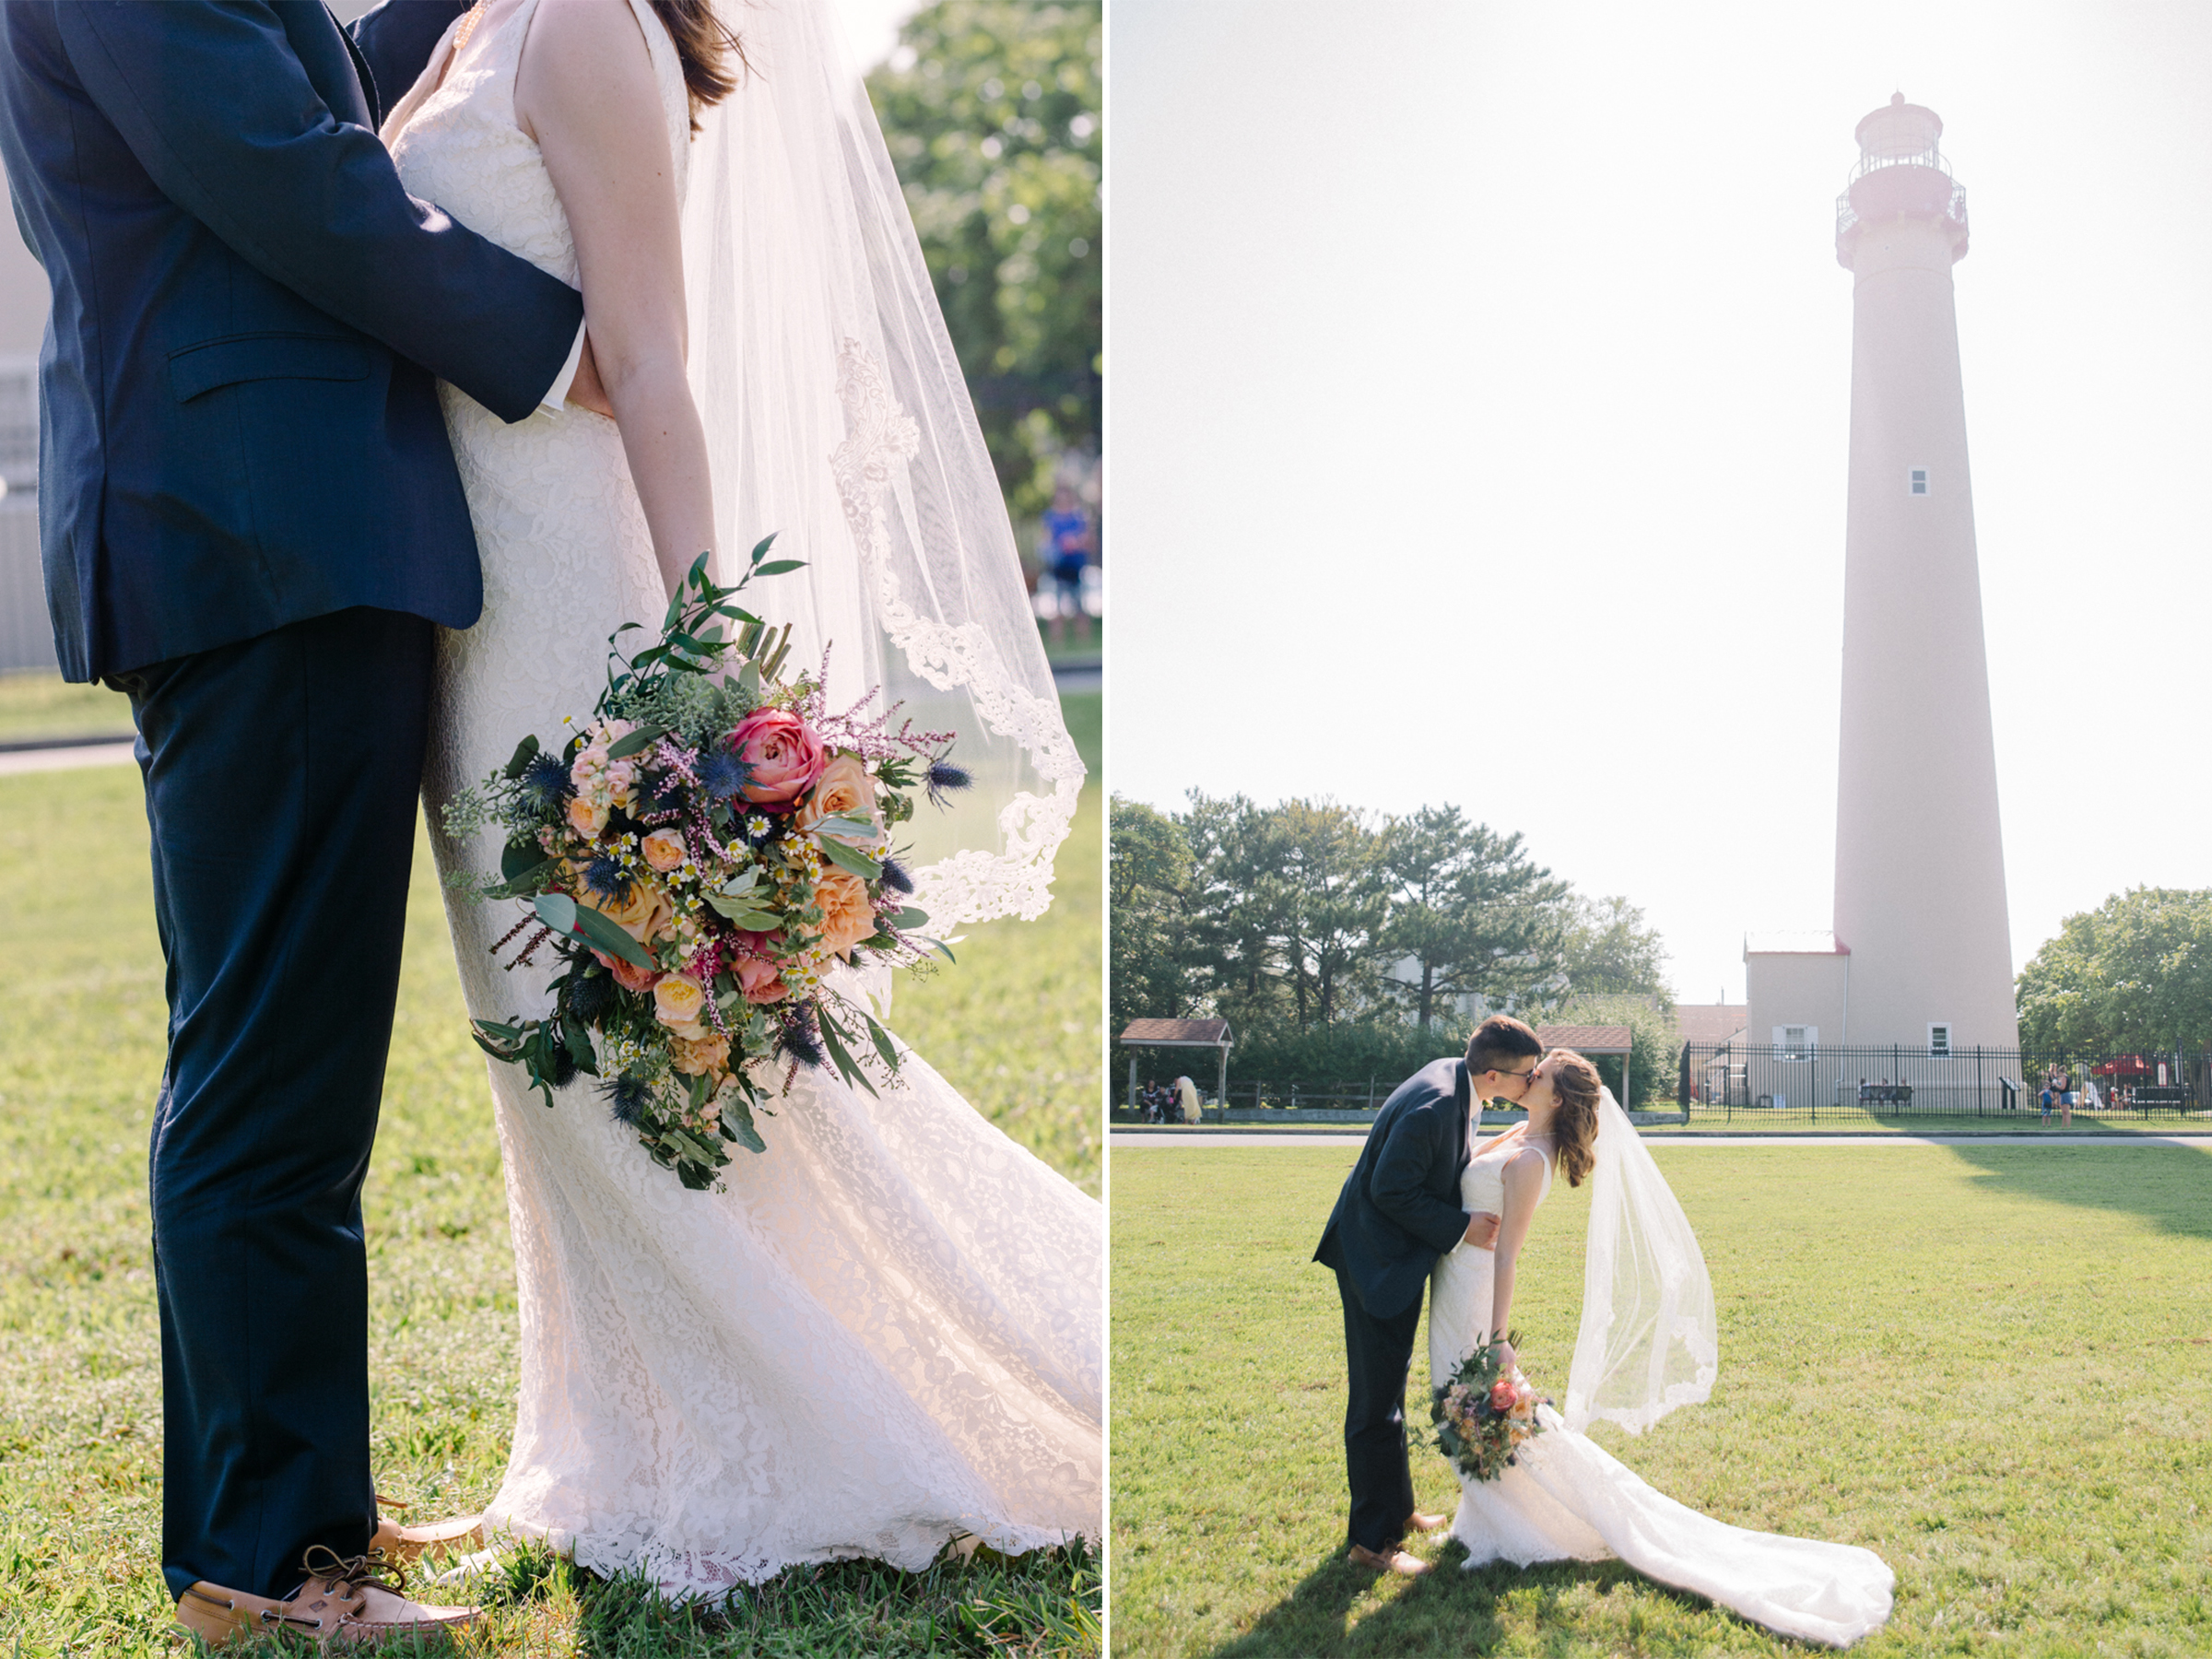 Carolyn+Dominic- Bride and Groom Portraits- Cape May Lighthouse- Congress Hall Wedding- Cape May New Jersey- Olivia Christina Photo-44.jpg